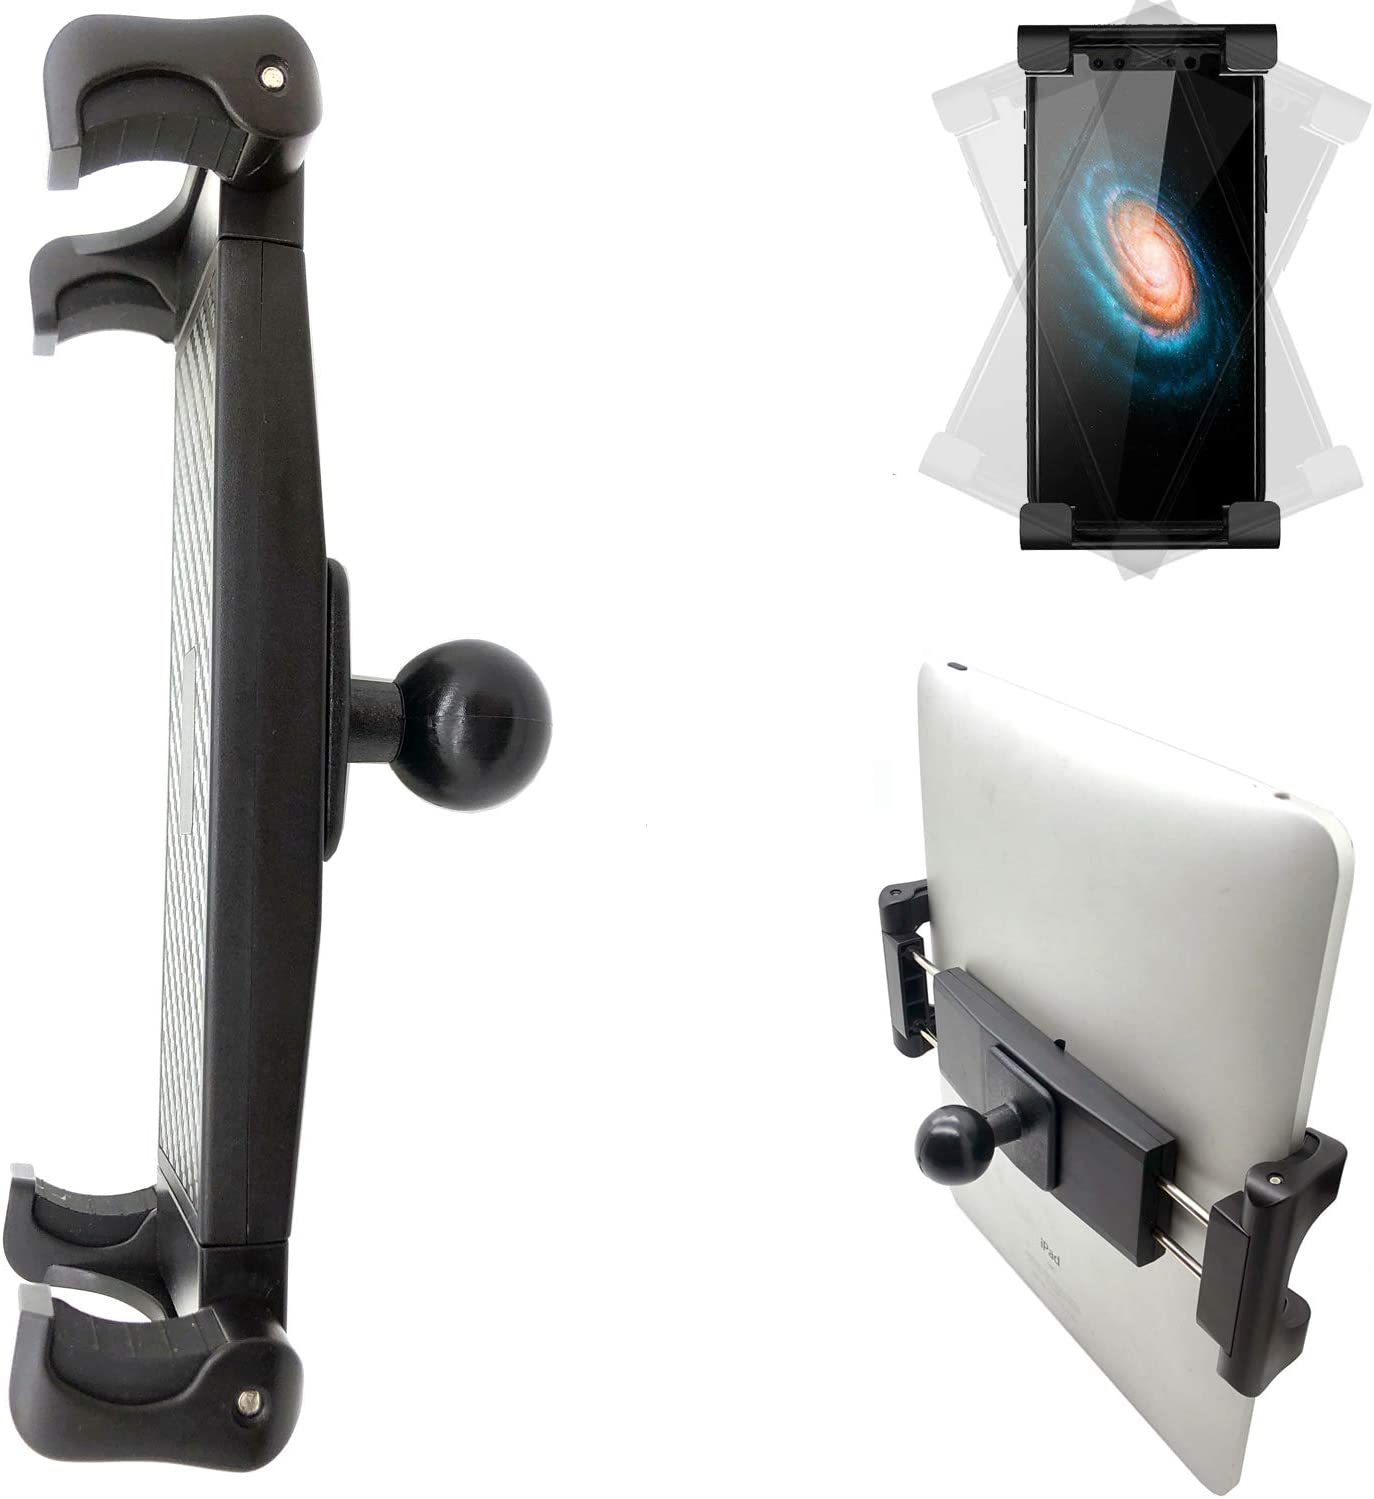 Lycan Series Universal Tablet / Smartphone holder with 1